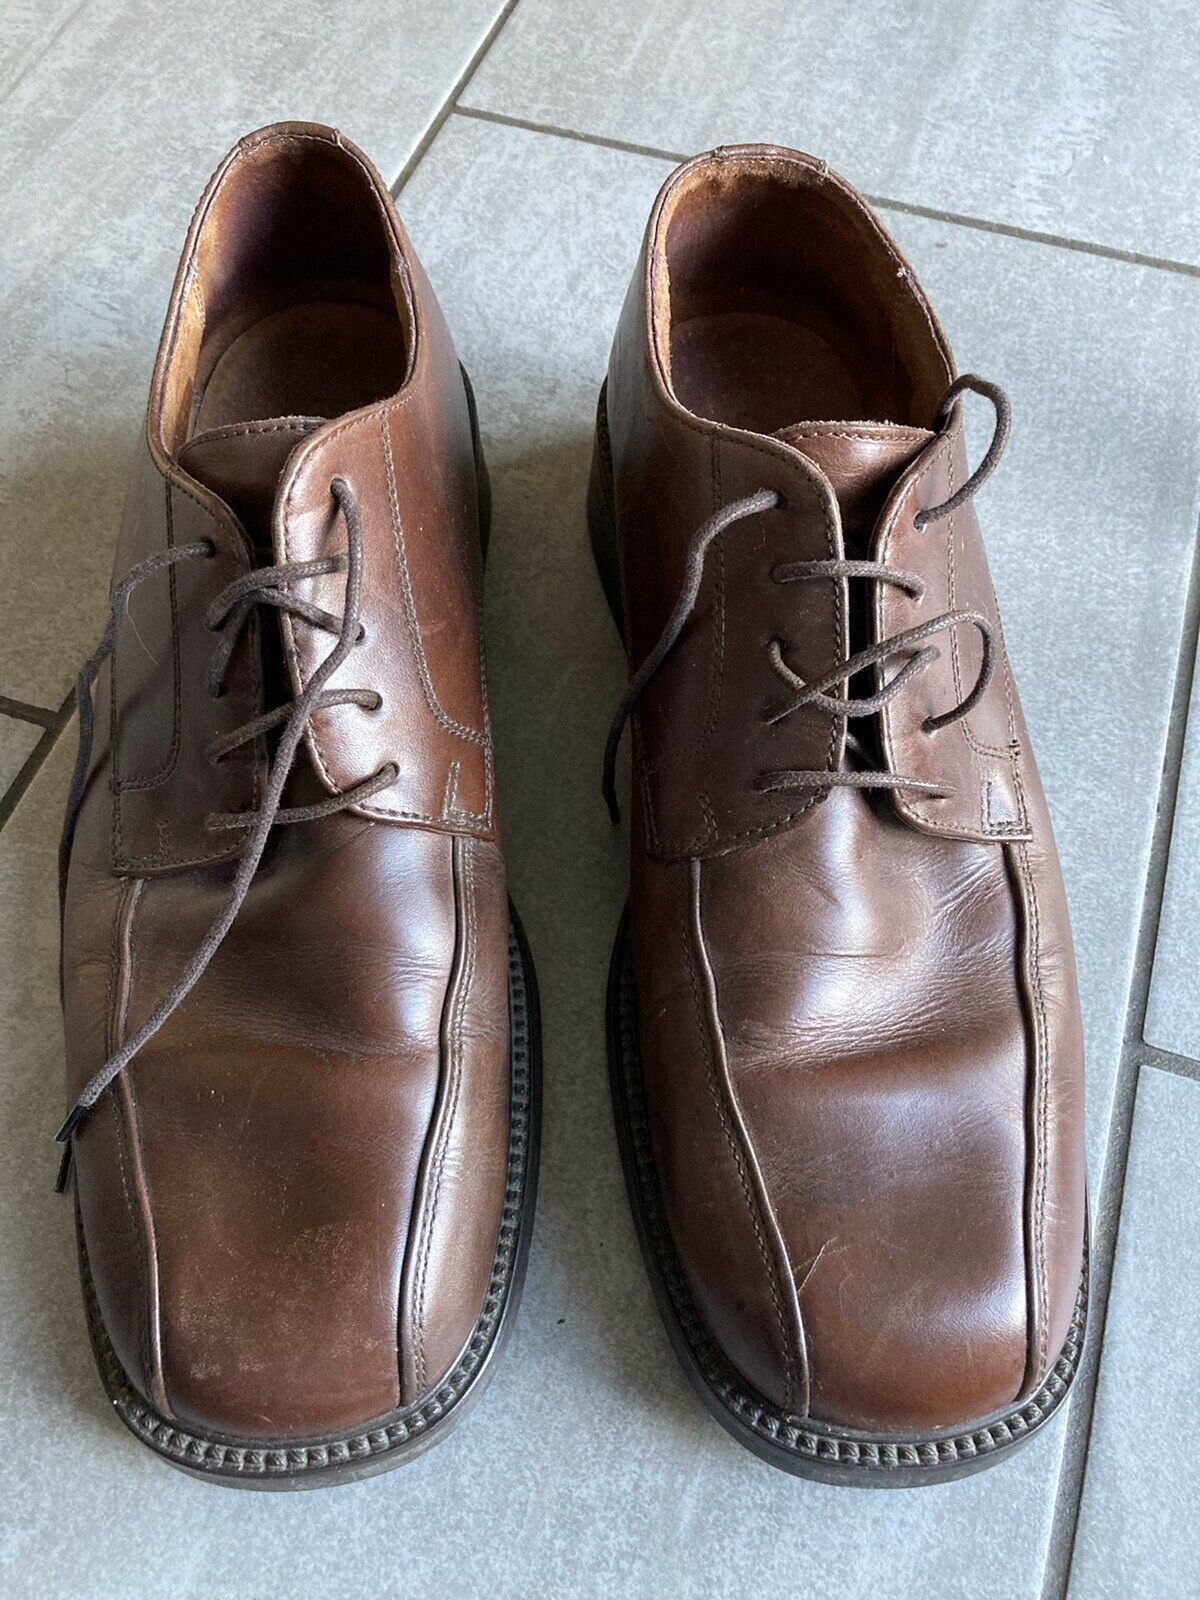 Clarks Mens Brown Leather Heavyweight Lace Up Shoes Size 10 1/2 Great Condition.